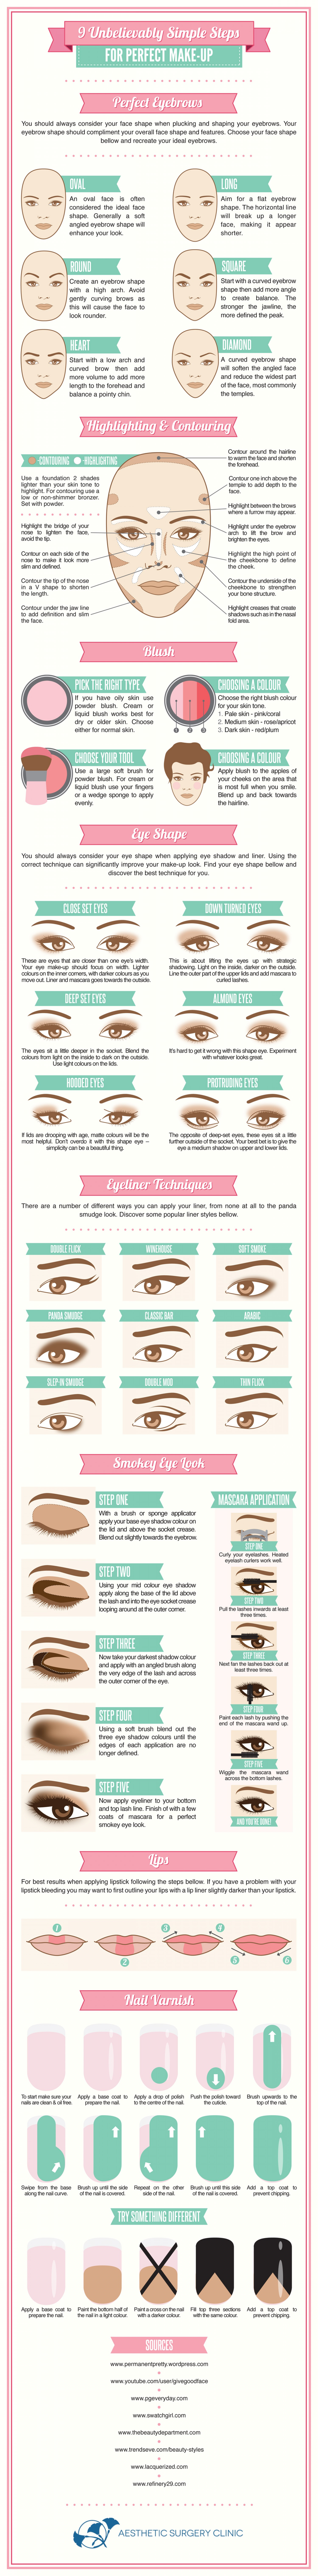 9-unbelievably-simple-steps-to-perfect-makeup_53300a153e3d6_w1500